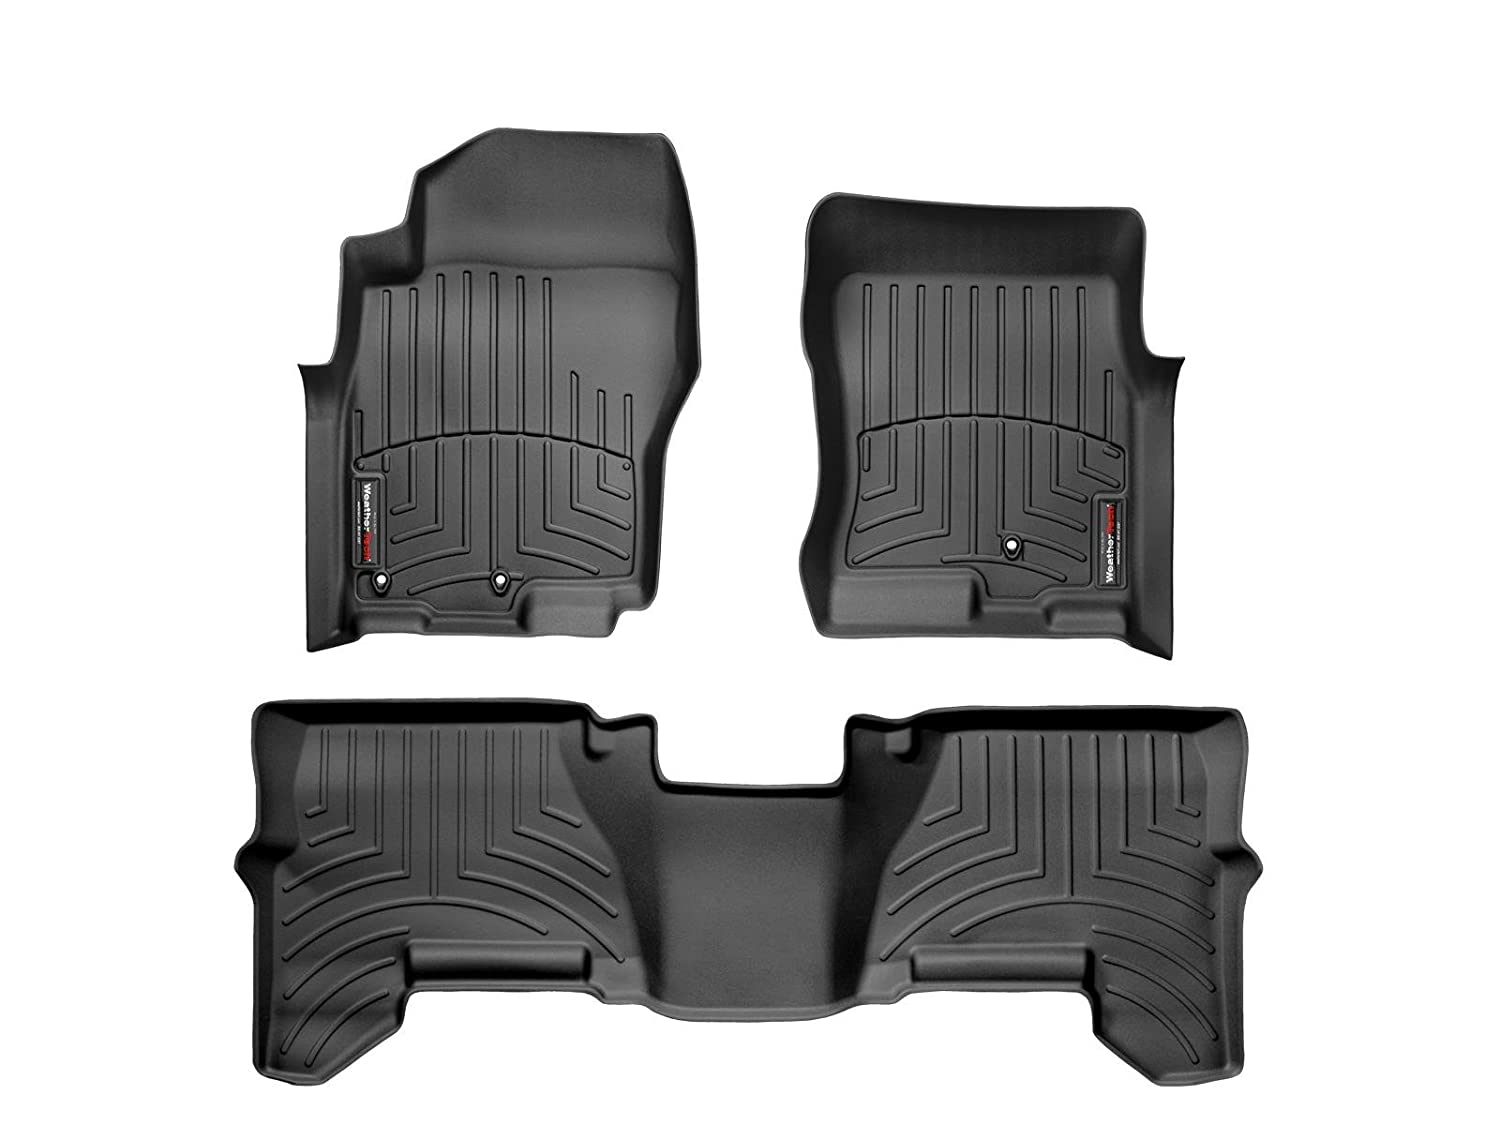 Weathertech floor mats nissan pathfinder - Amazon Com Weathertech Custom Fit Floorliner Nissan Xterra 2005 2013 1st 2nd Row Black 2 Retention Posts Automotive